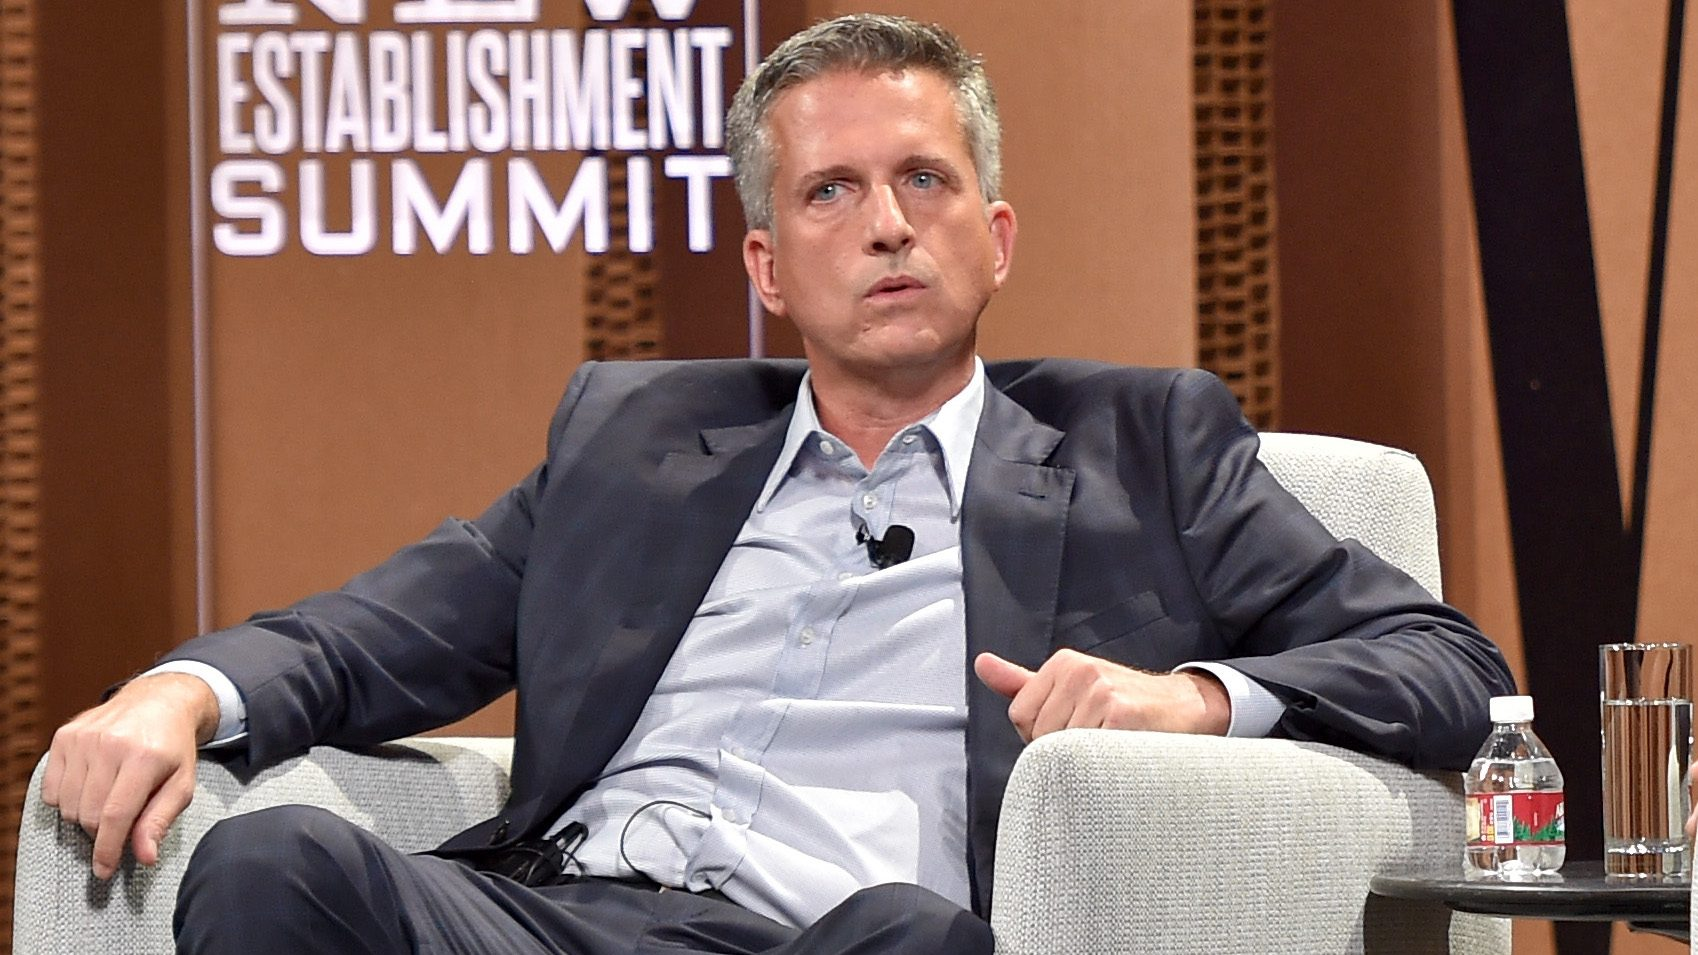 Bill Simmons sits in an armchair looking like an asshole